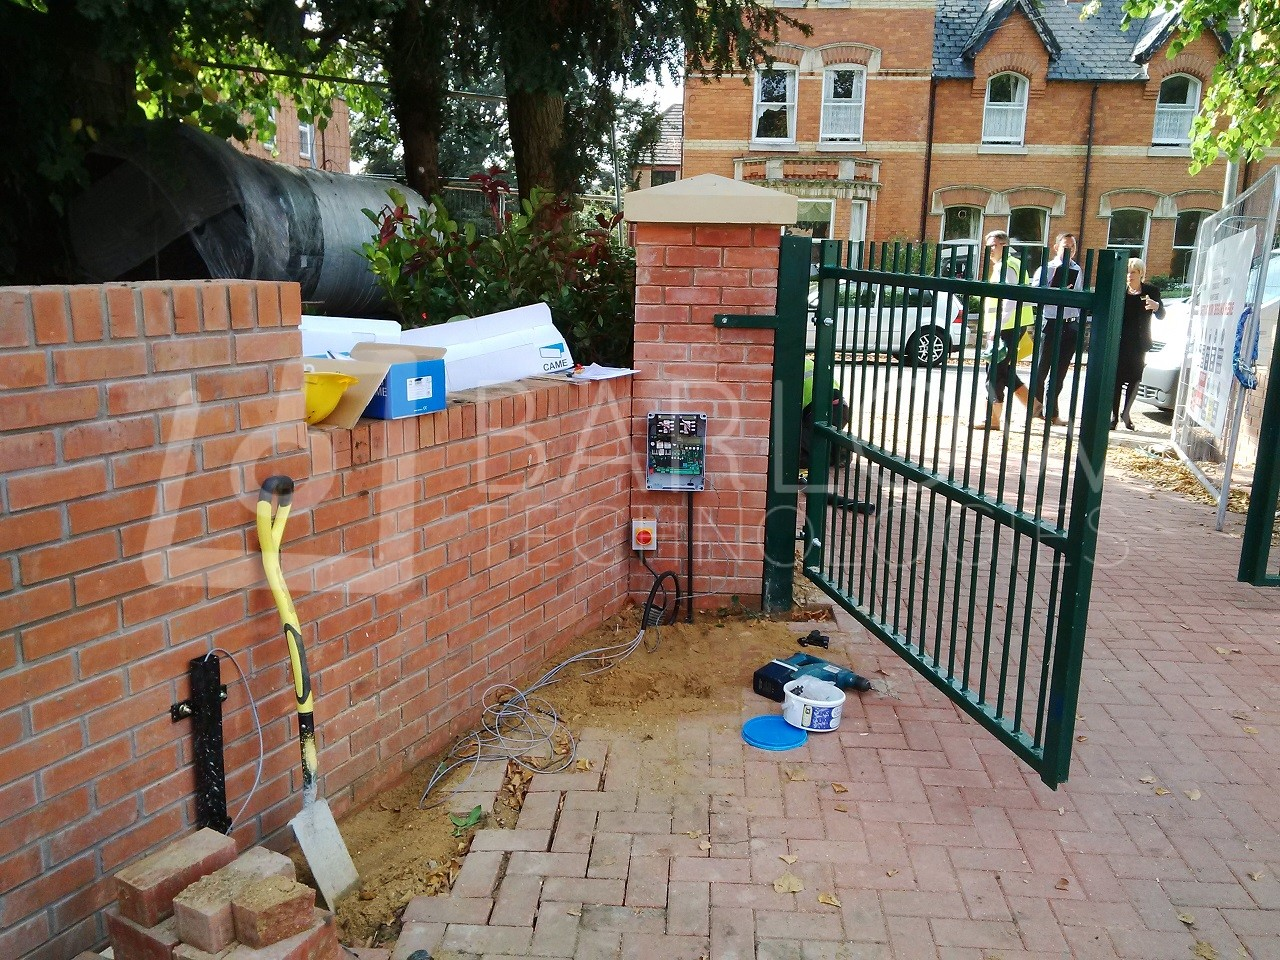 Swing gate automation came axo barlow technologies